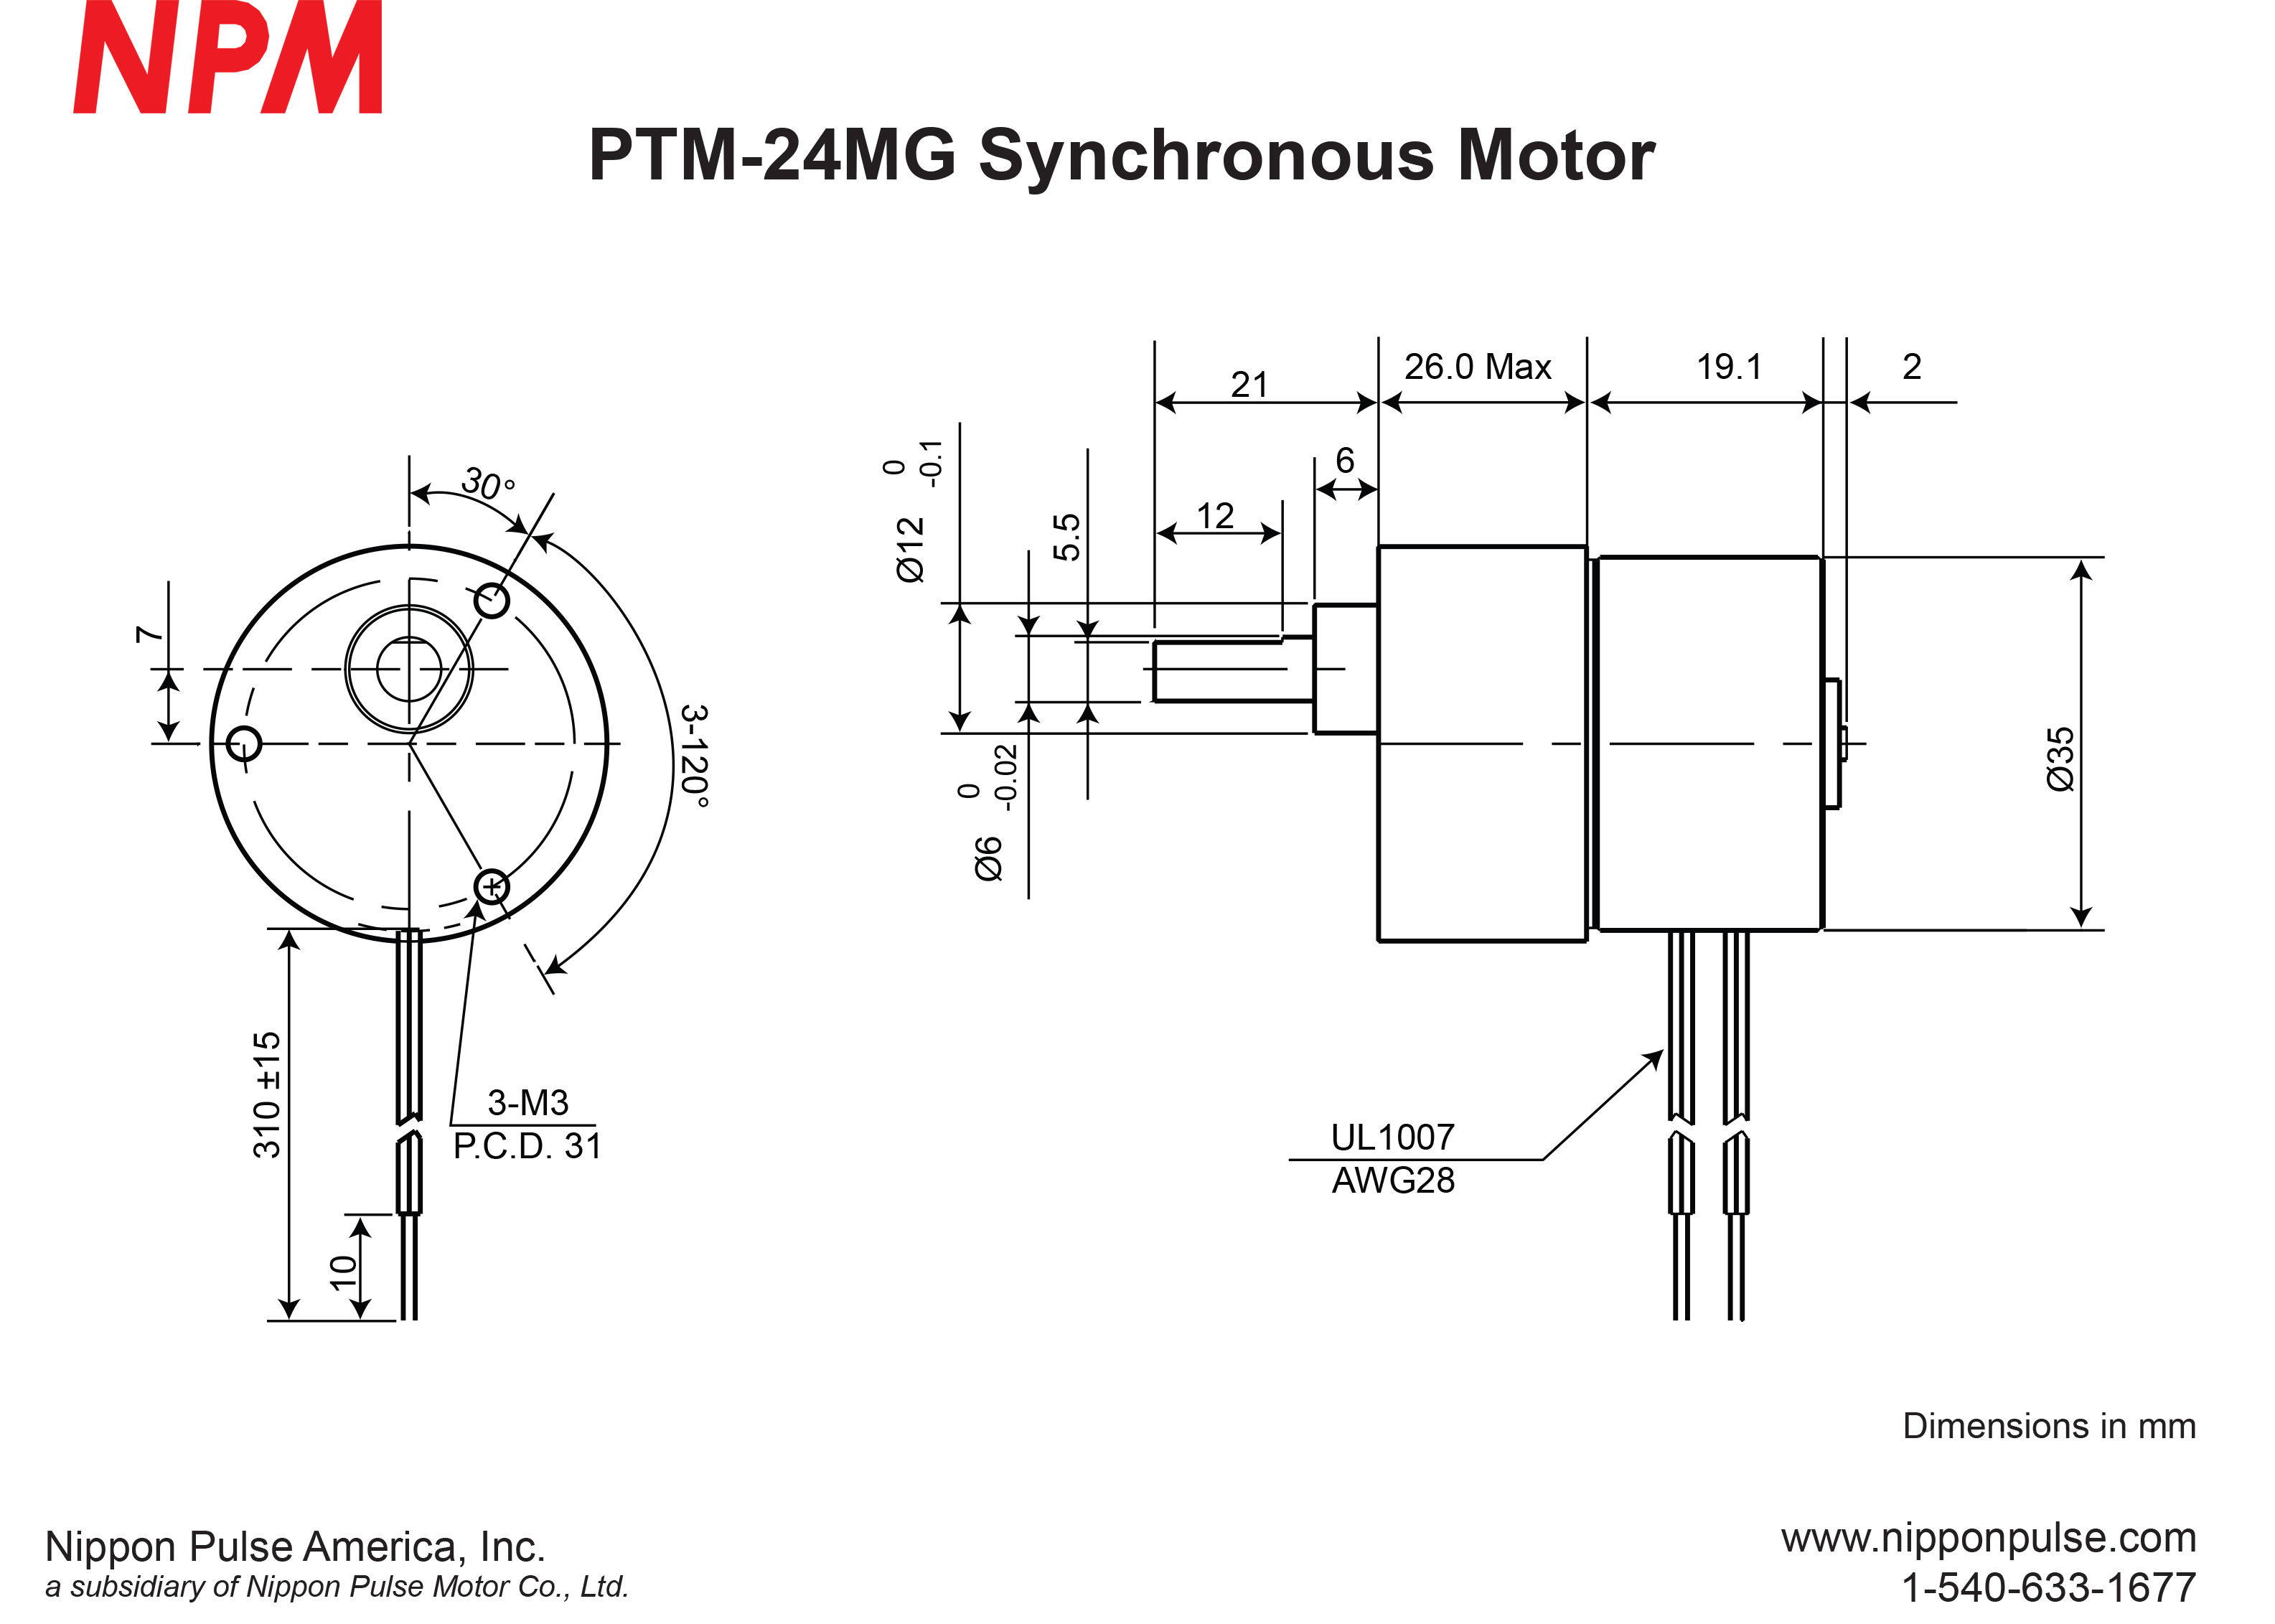 PTM-24MG(1/150) system drawing